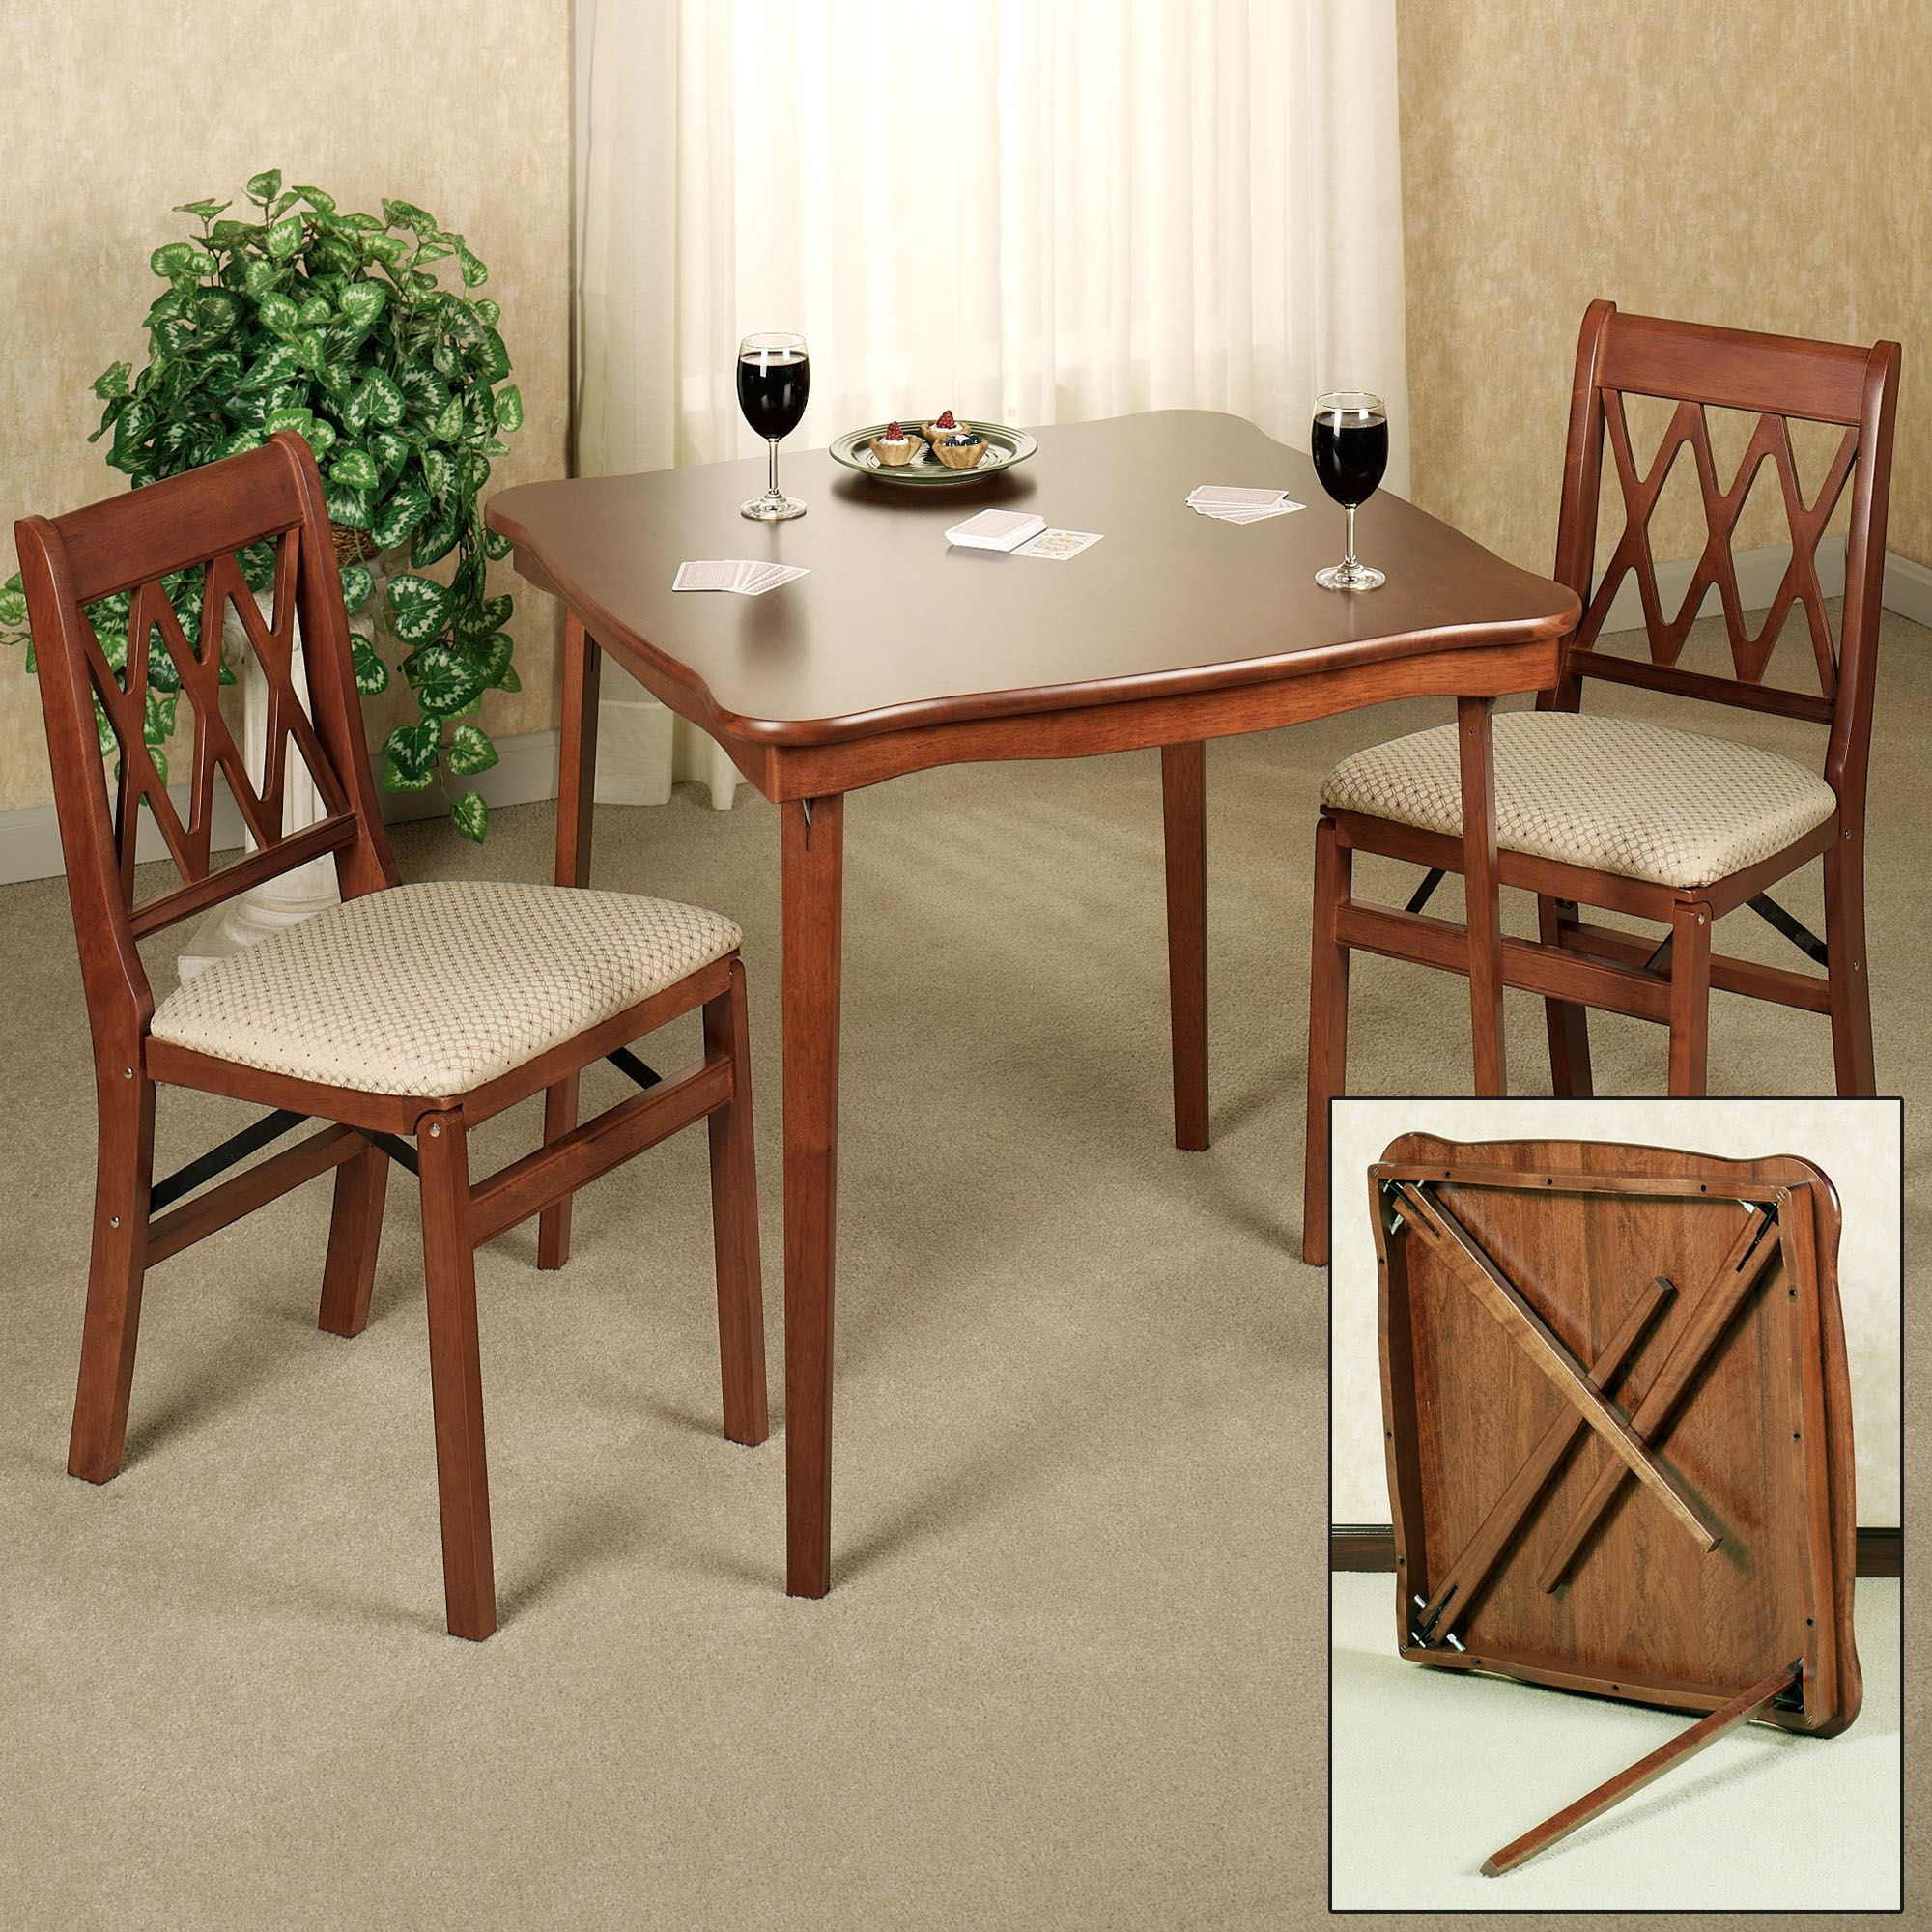 Scalloped Folding Card Table